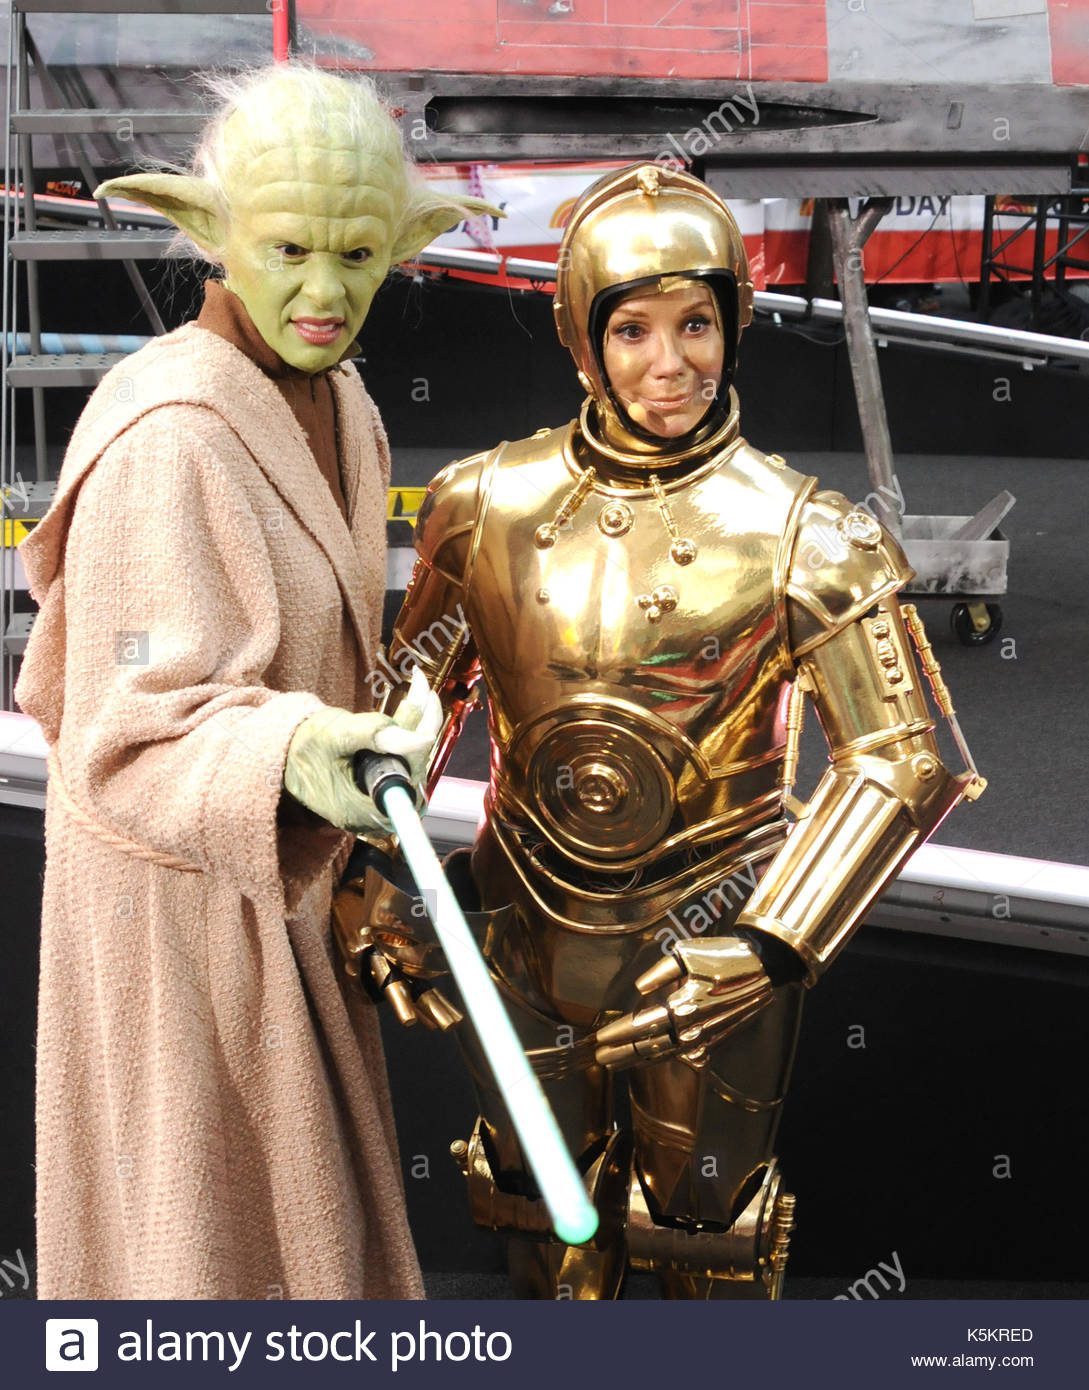 Hoda Kotb Yoda Kathie Lee Gifford NBC Today Show Star Wars Halloween Spectacular In NYC Rockefeller Center